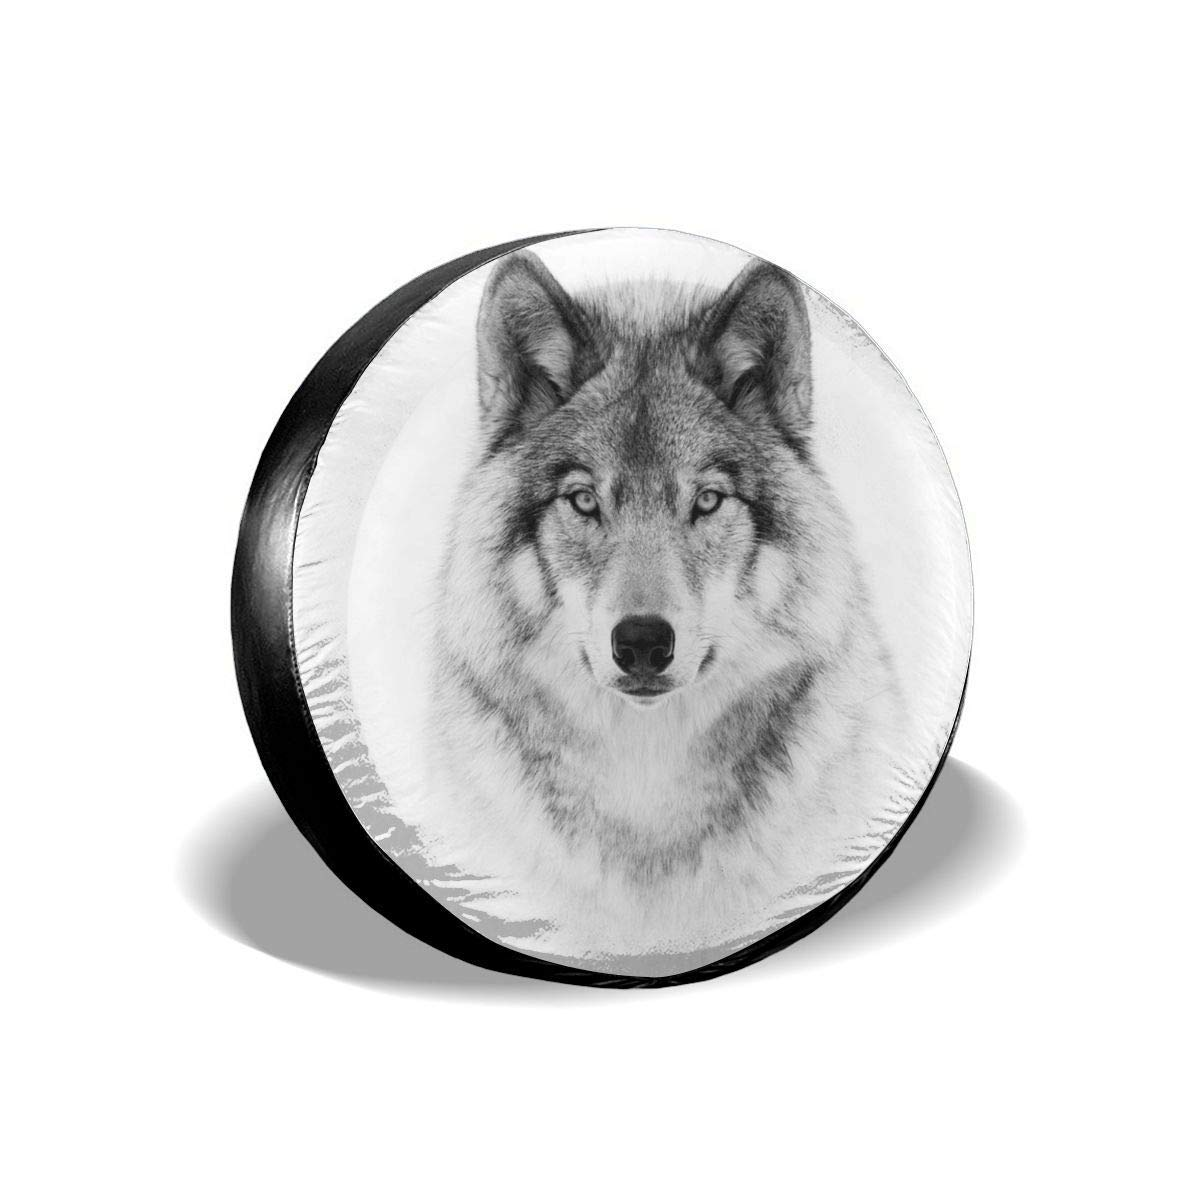 Monotone Timber Wolf Car Tire Cover Rainproof Protective Cover Cape Water Proof Universal Spare Wheel Tire Cover Fit for Trailer RV SUV and Various Vehicles Tire Cover Belleeer Reserveradabdeckung